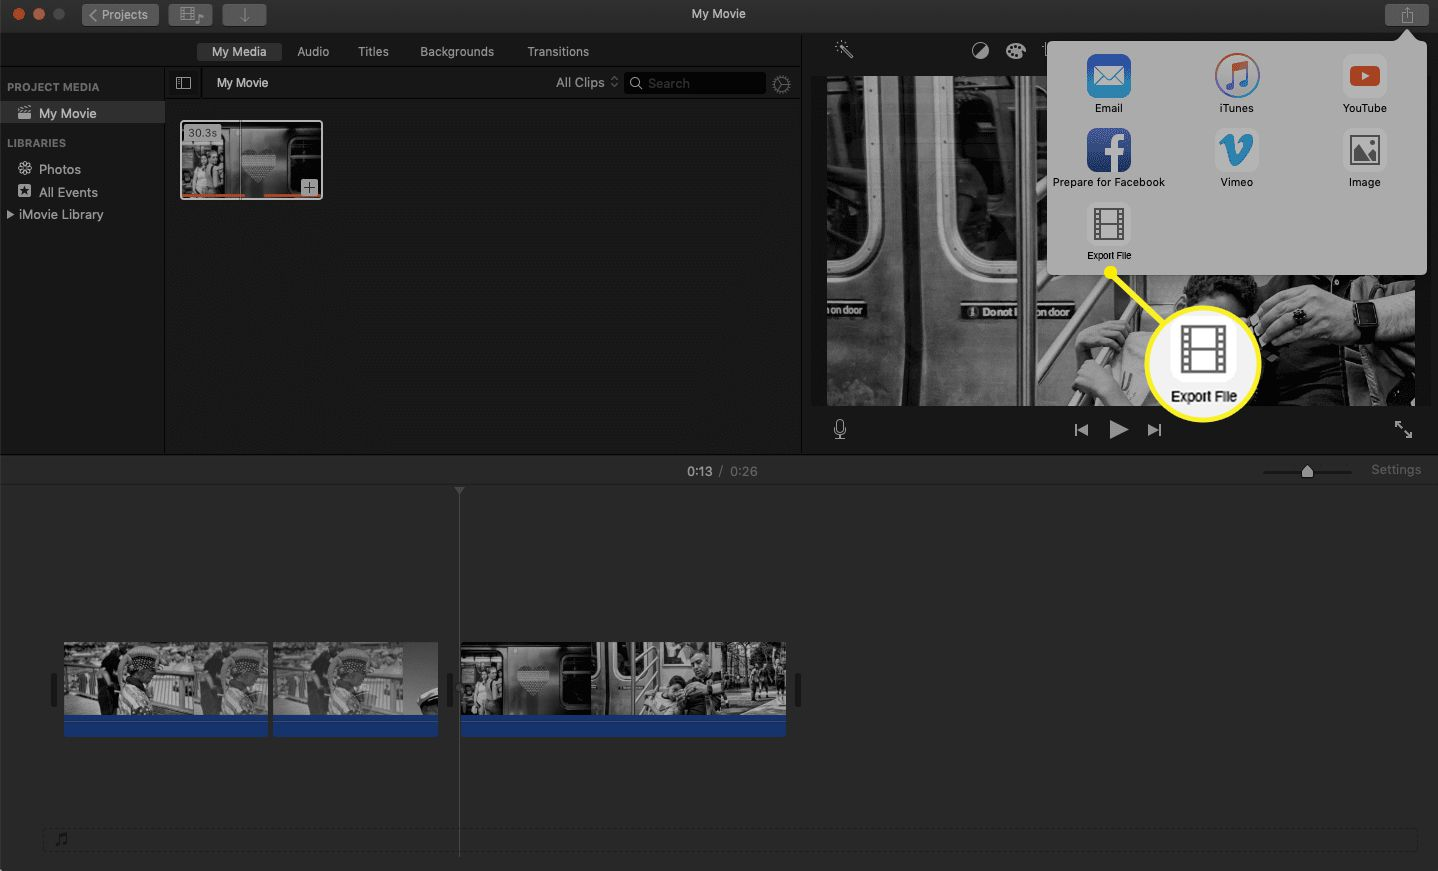 iMovie share tab with the Export File icon highlighted.